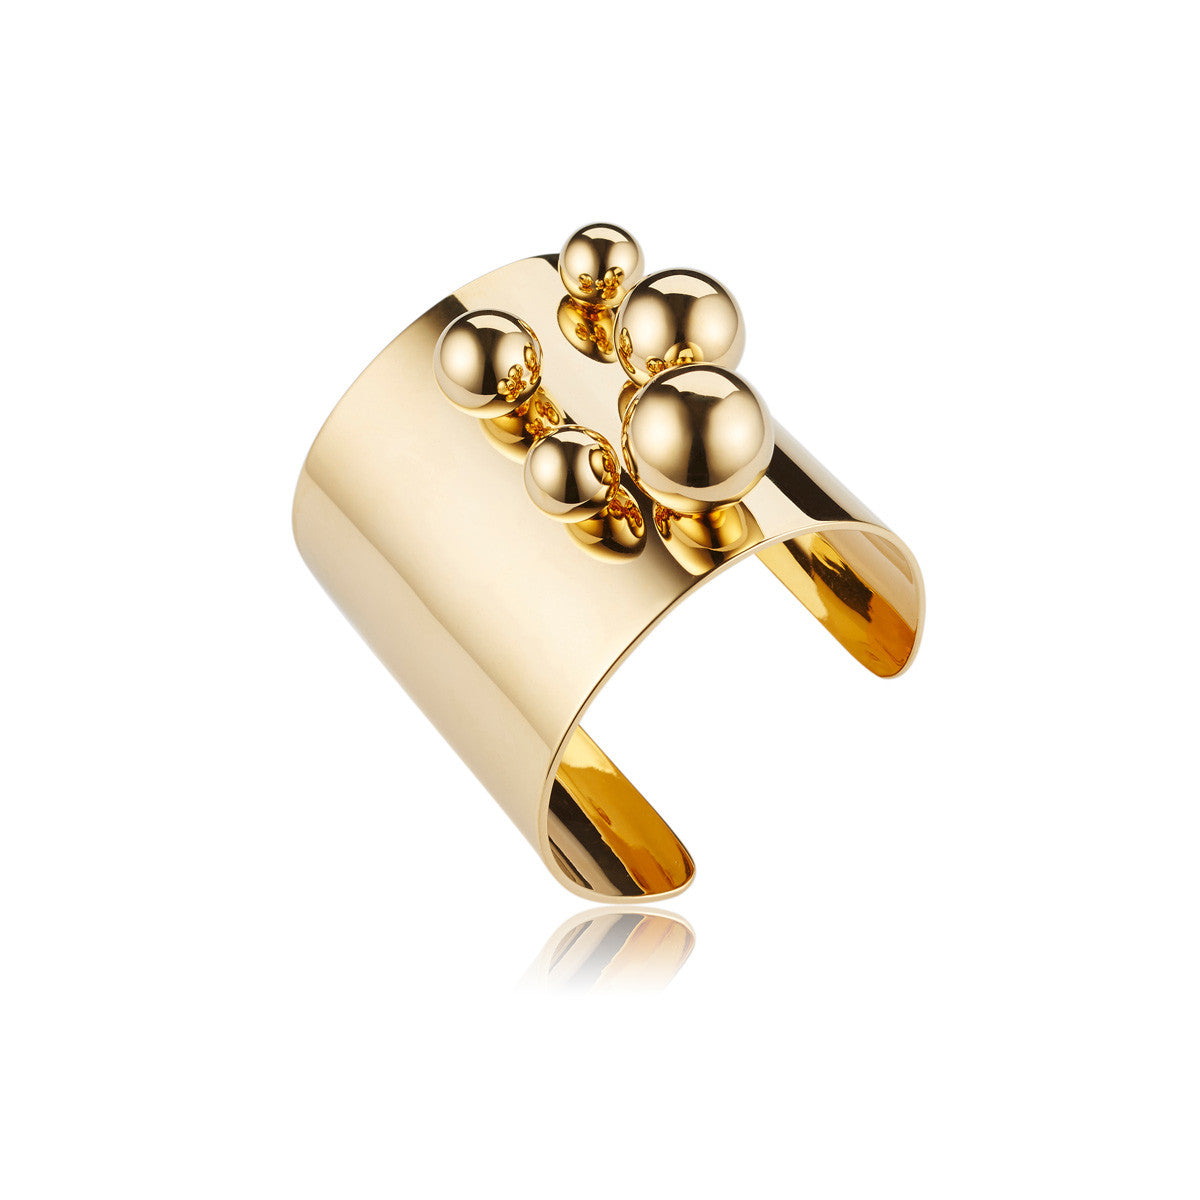 Solid brass, 18K gold plated Stellatus cuff bangle is adorned with a cluster of spheres – side